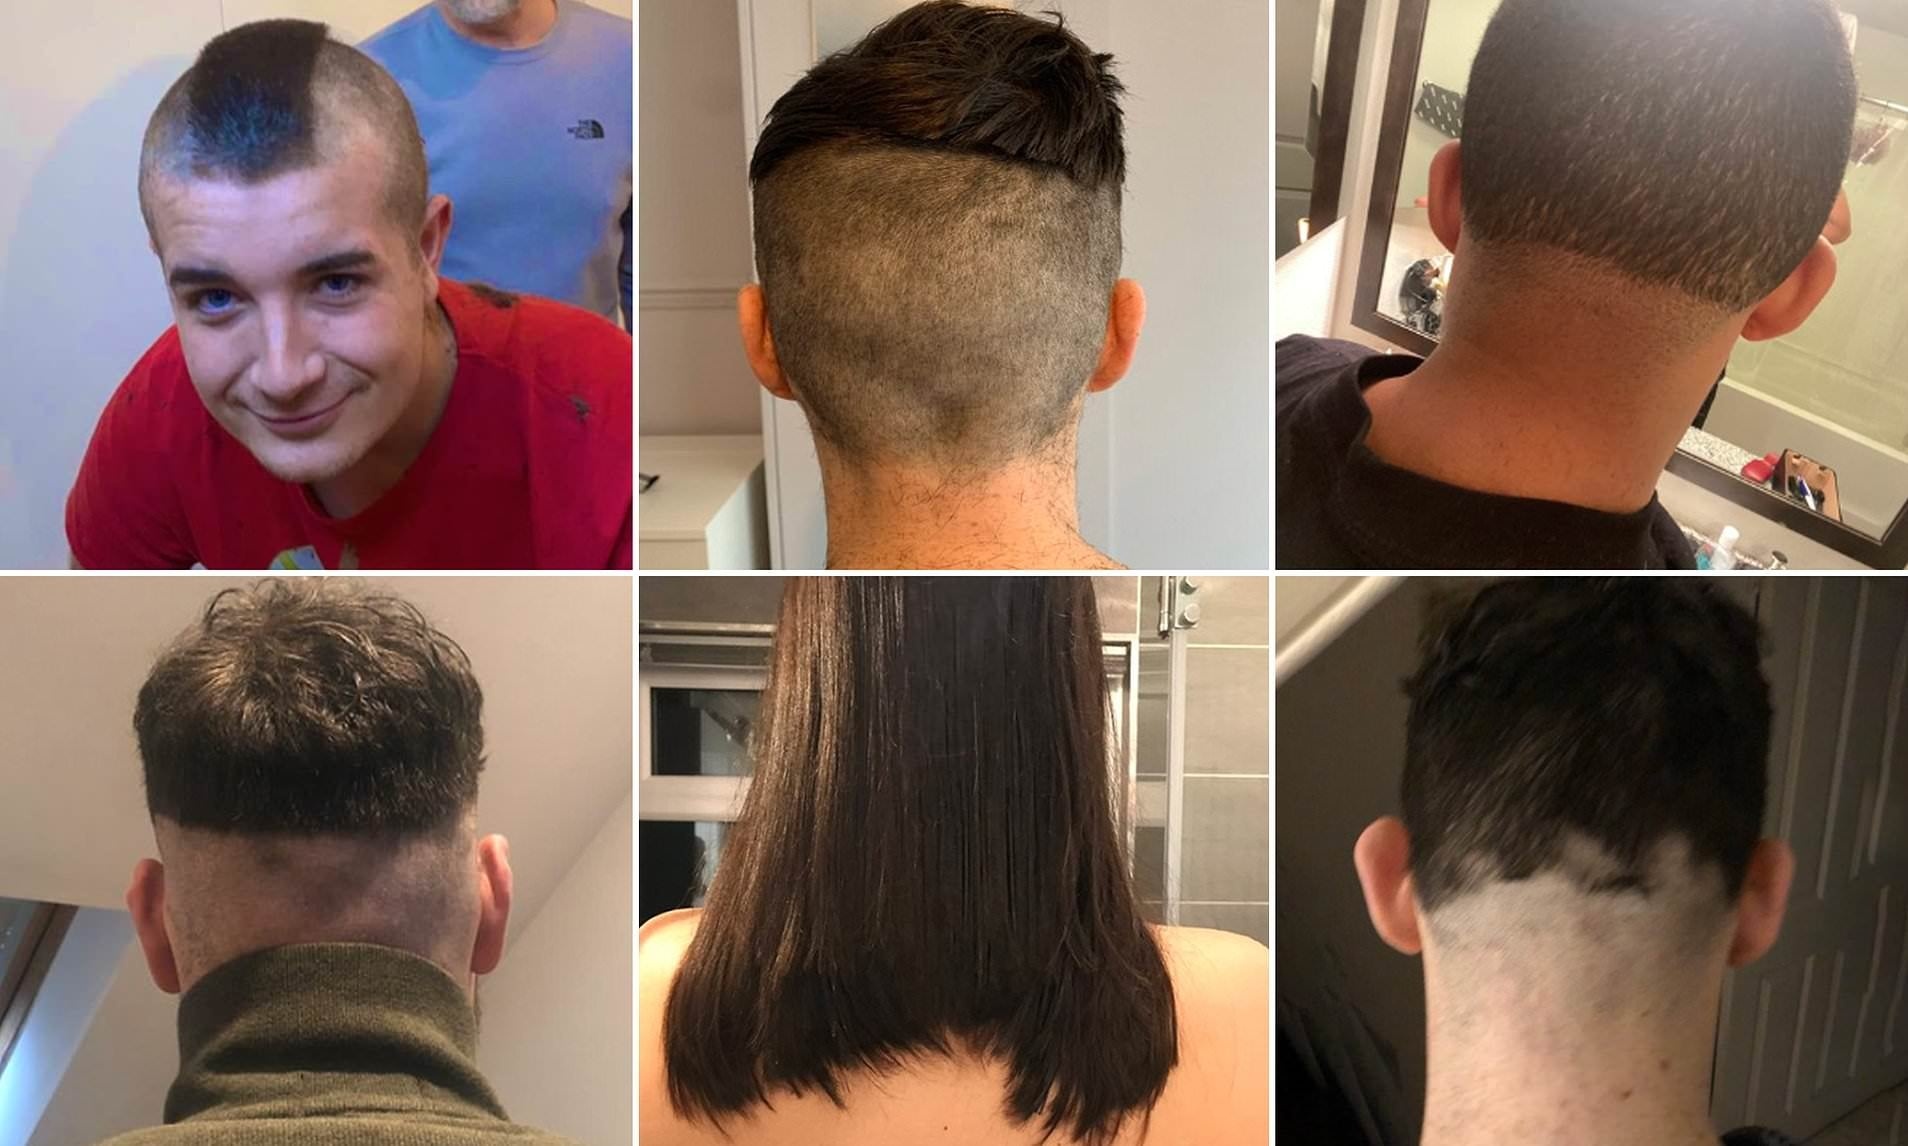 Bored Girlfriends Are Giving Their Boyfriends The Worst Haircuts In Isolation